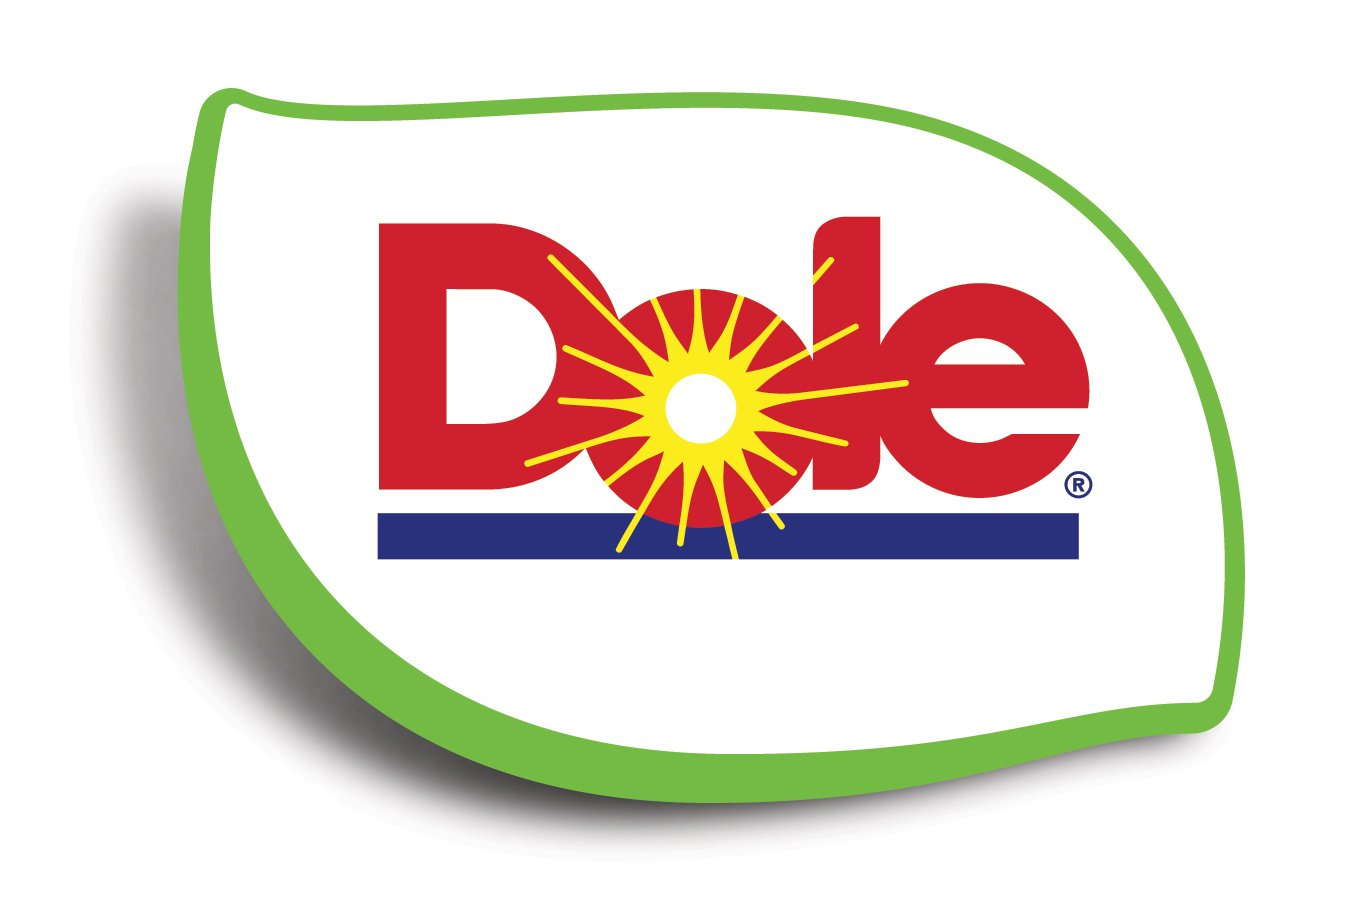 Dole Food Company Logo - Dole Launches Refreshed Brand | Business Wire